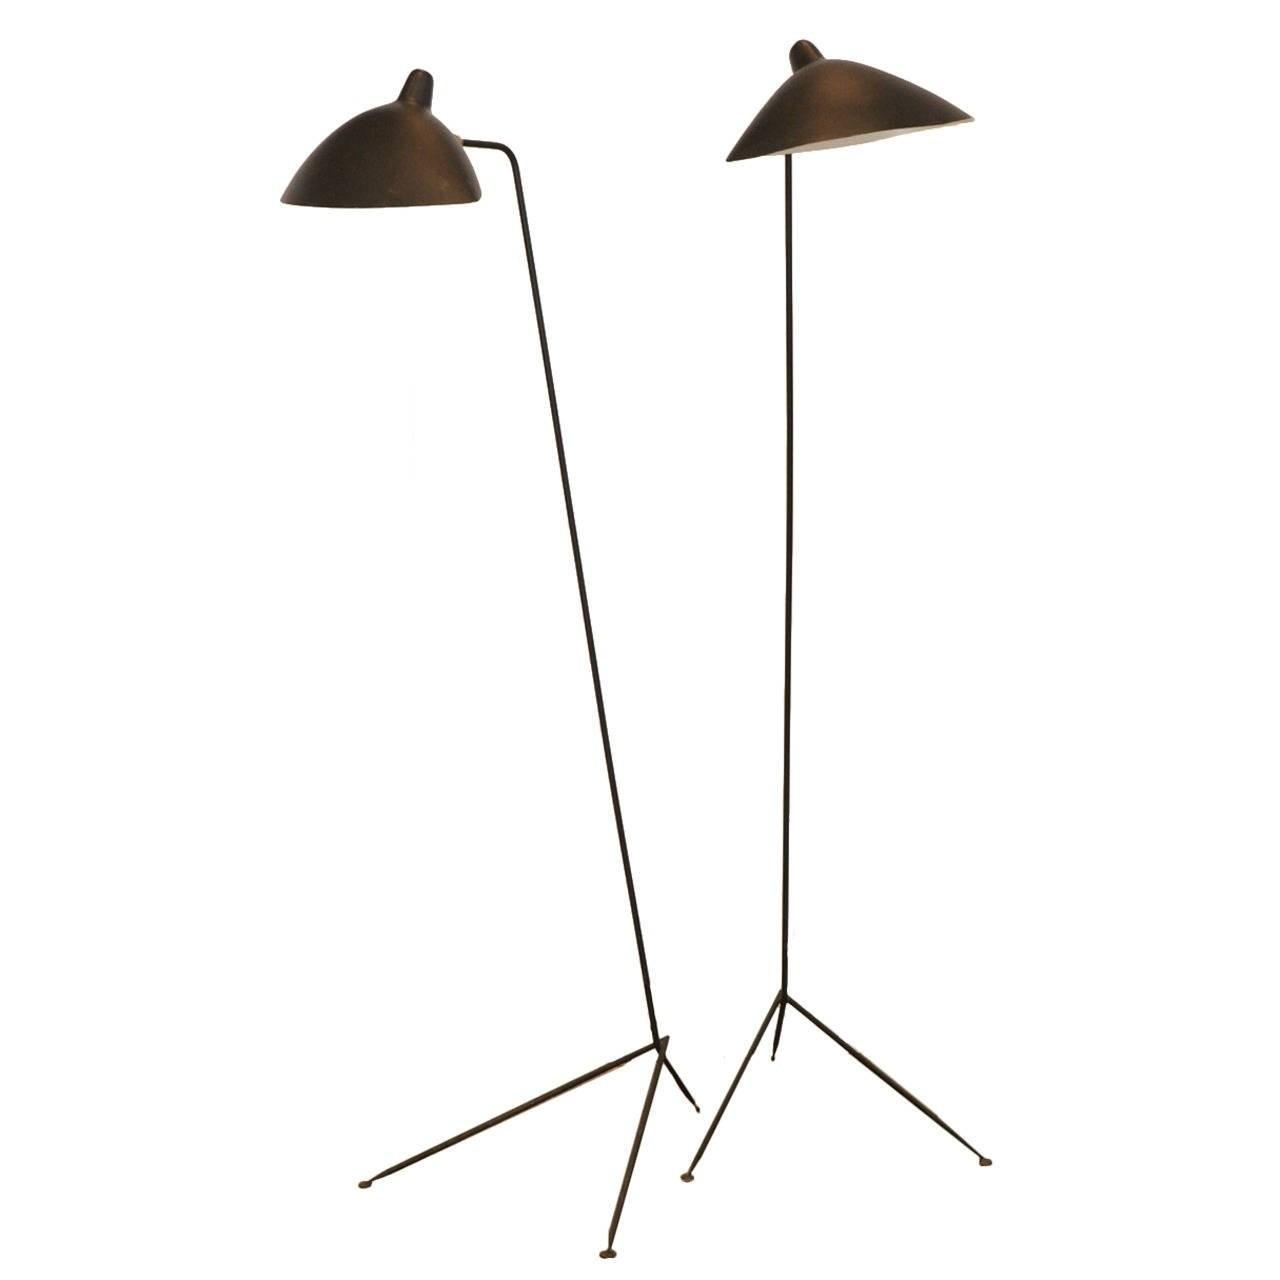 Pair Serge Mouille One Armed Floor Lamps France